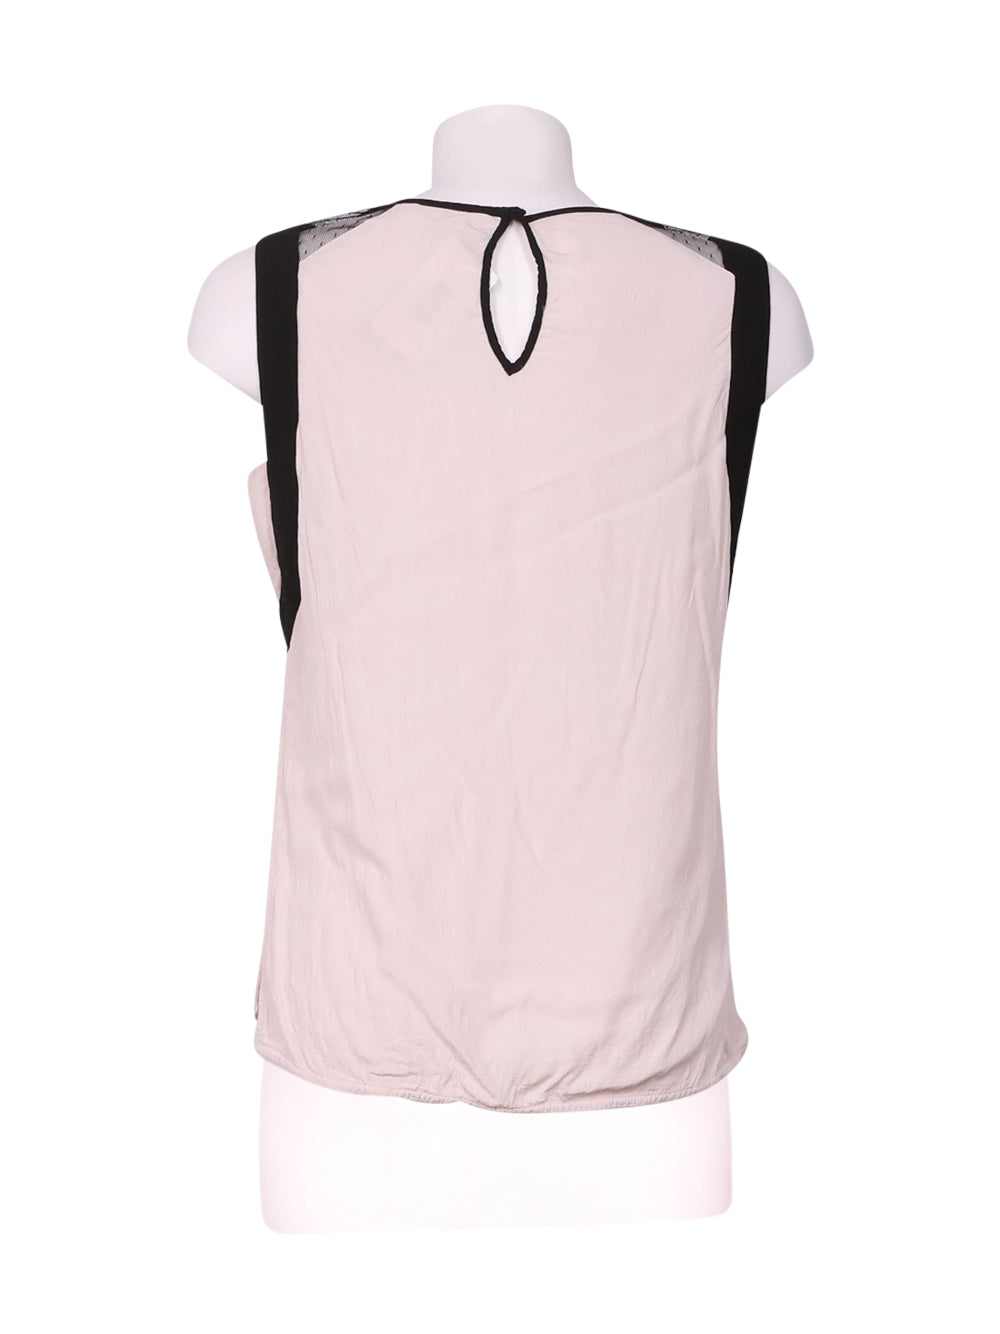 Back photo of Preloved Naf Naf Pink Woman's sleeveless top - size 8/S